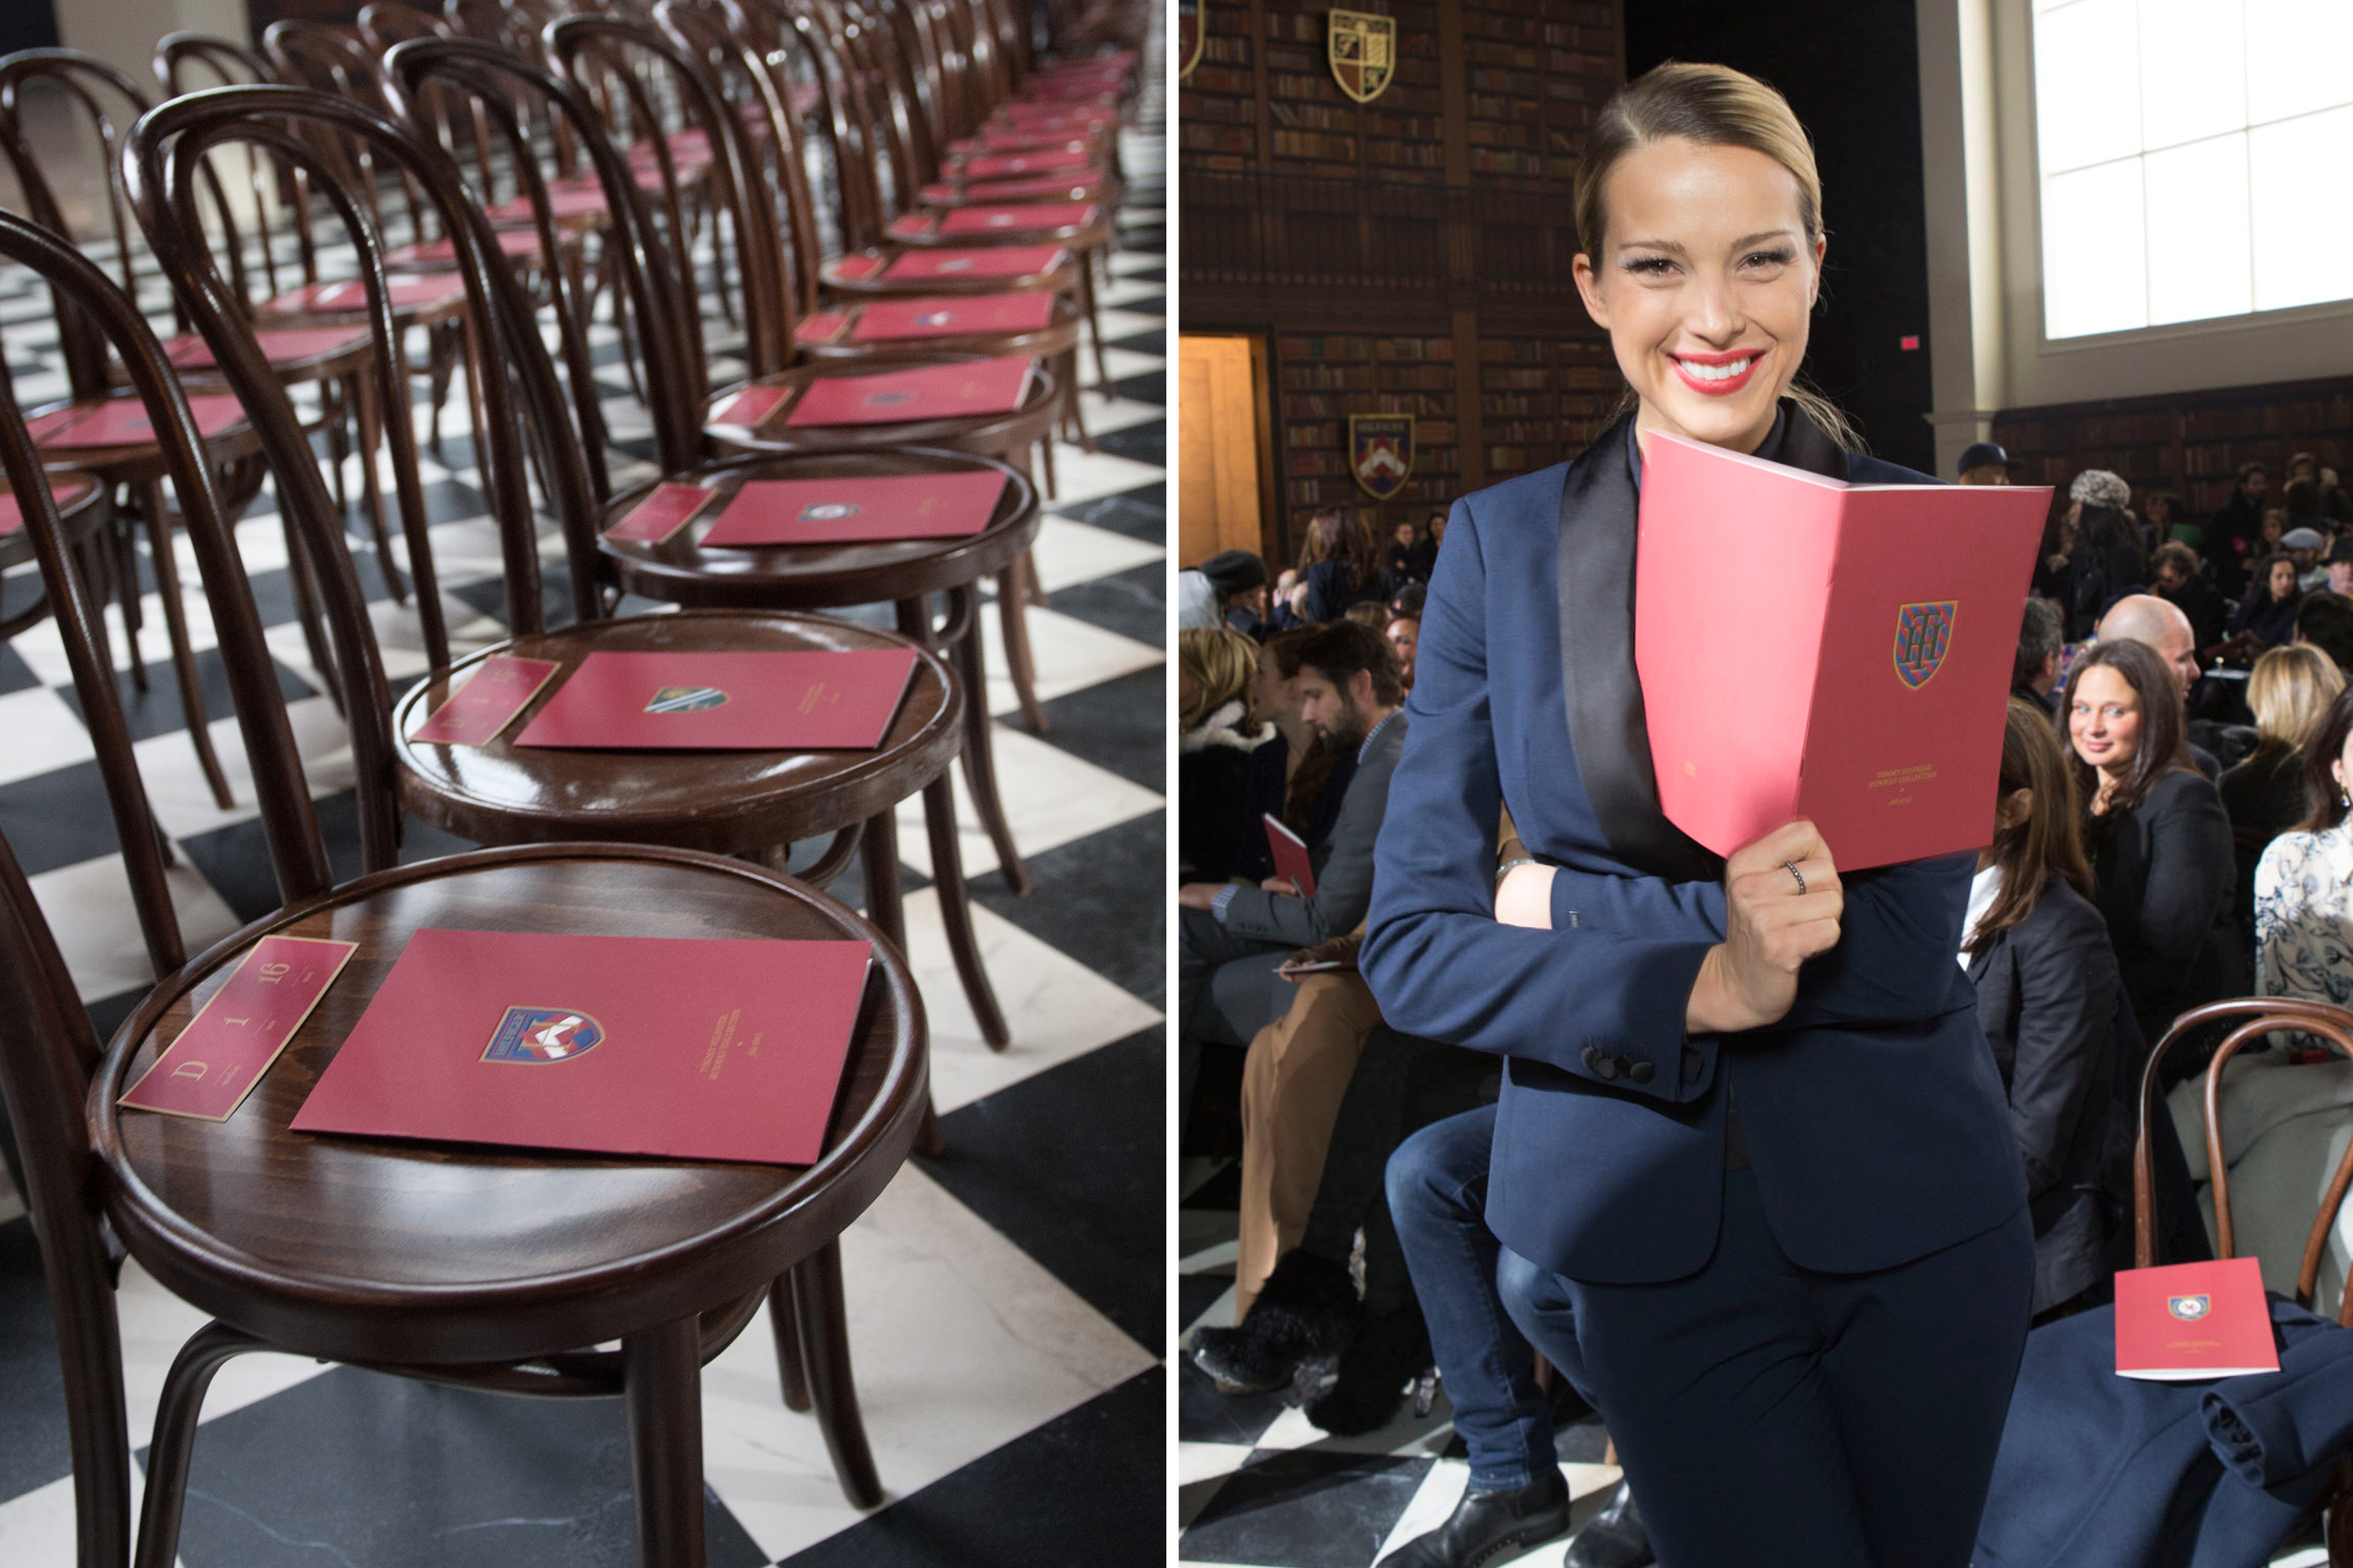 Petra Nemcova  reads quietly but with a smile.